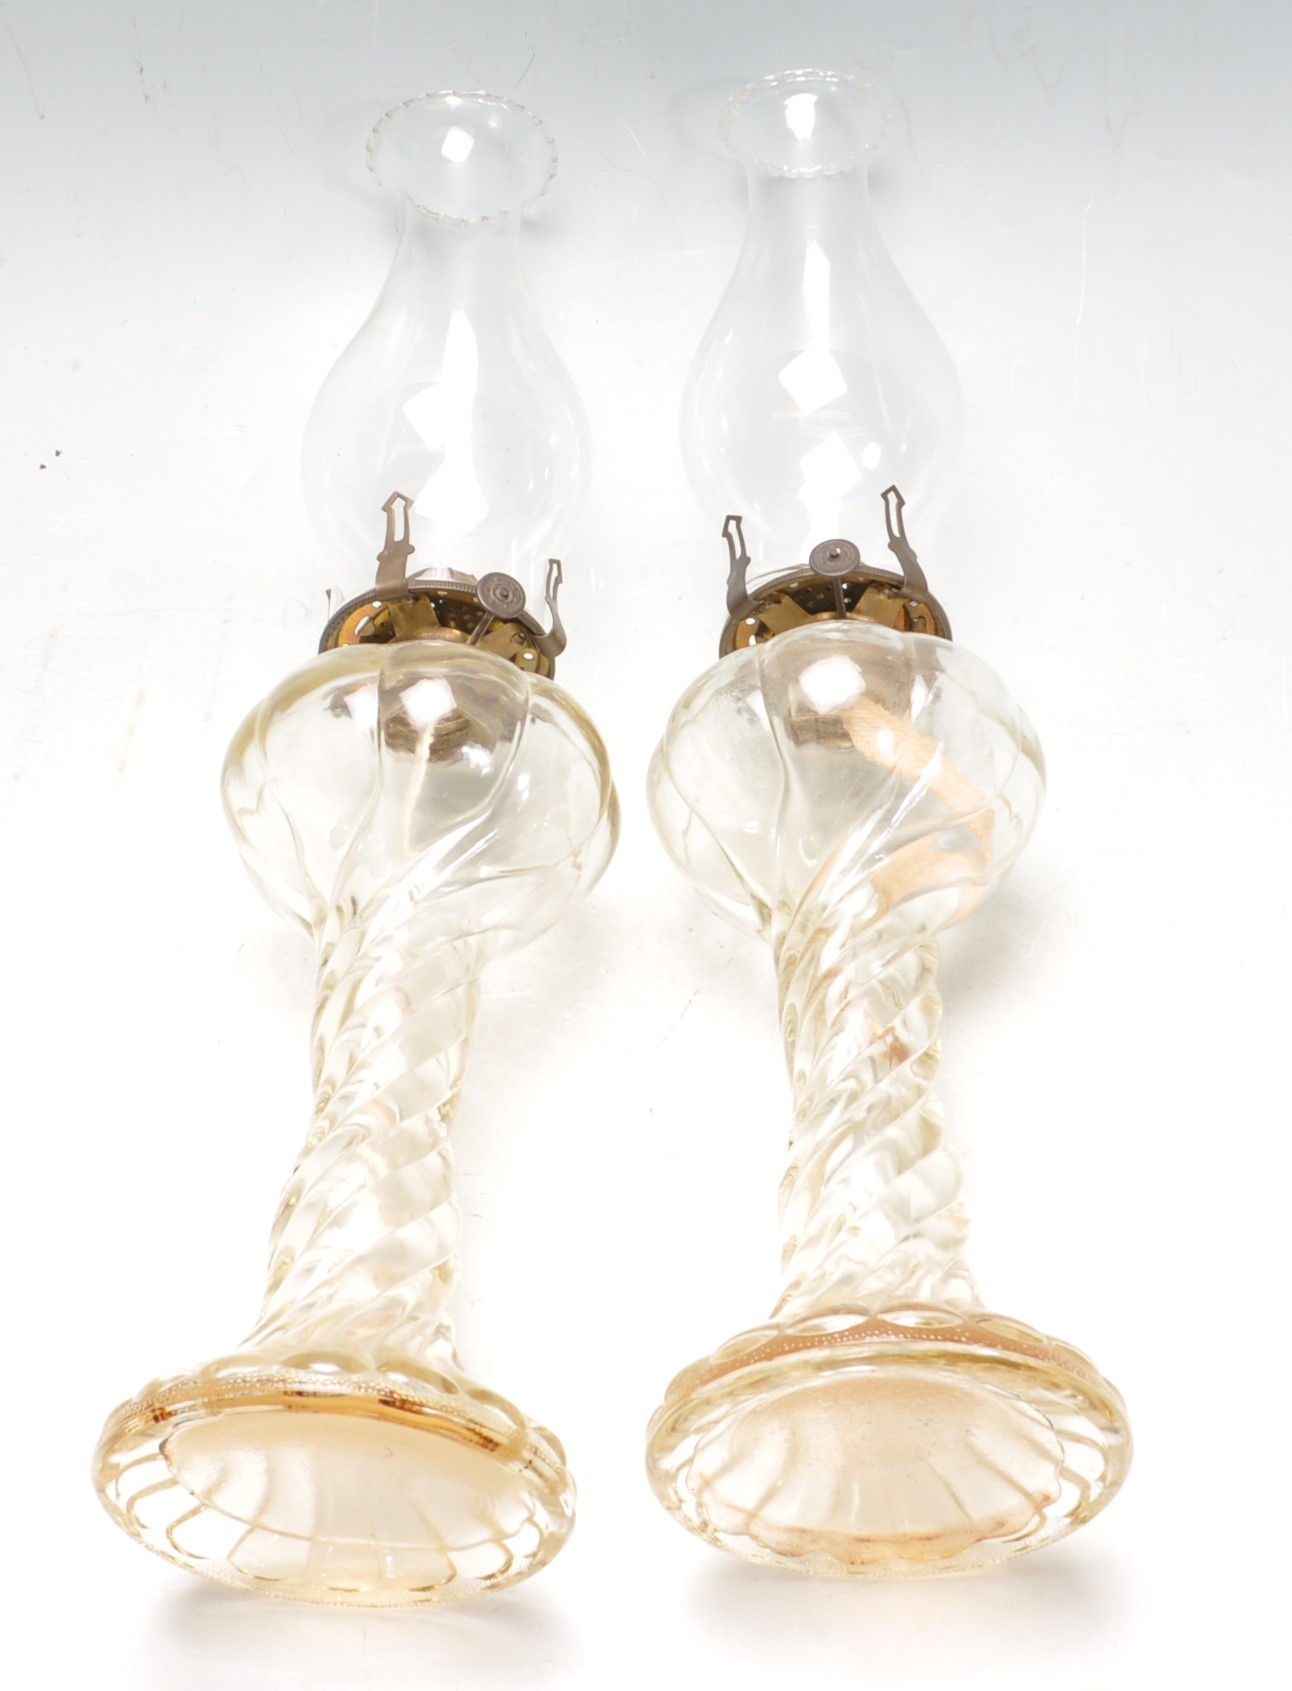 PAIR OF EARLY 20TH CENTURY 1930S ART DECO ERA GLASS OIL LAMPS - Image 4 of 4